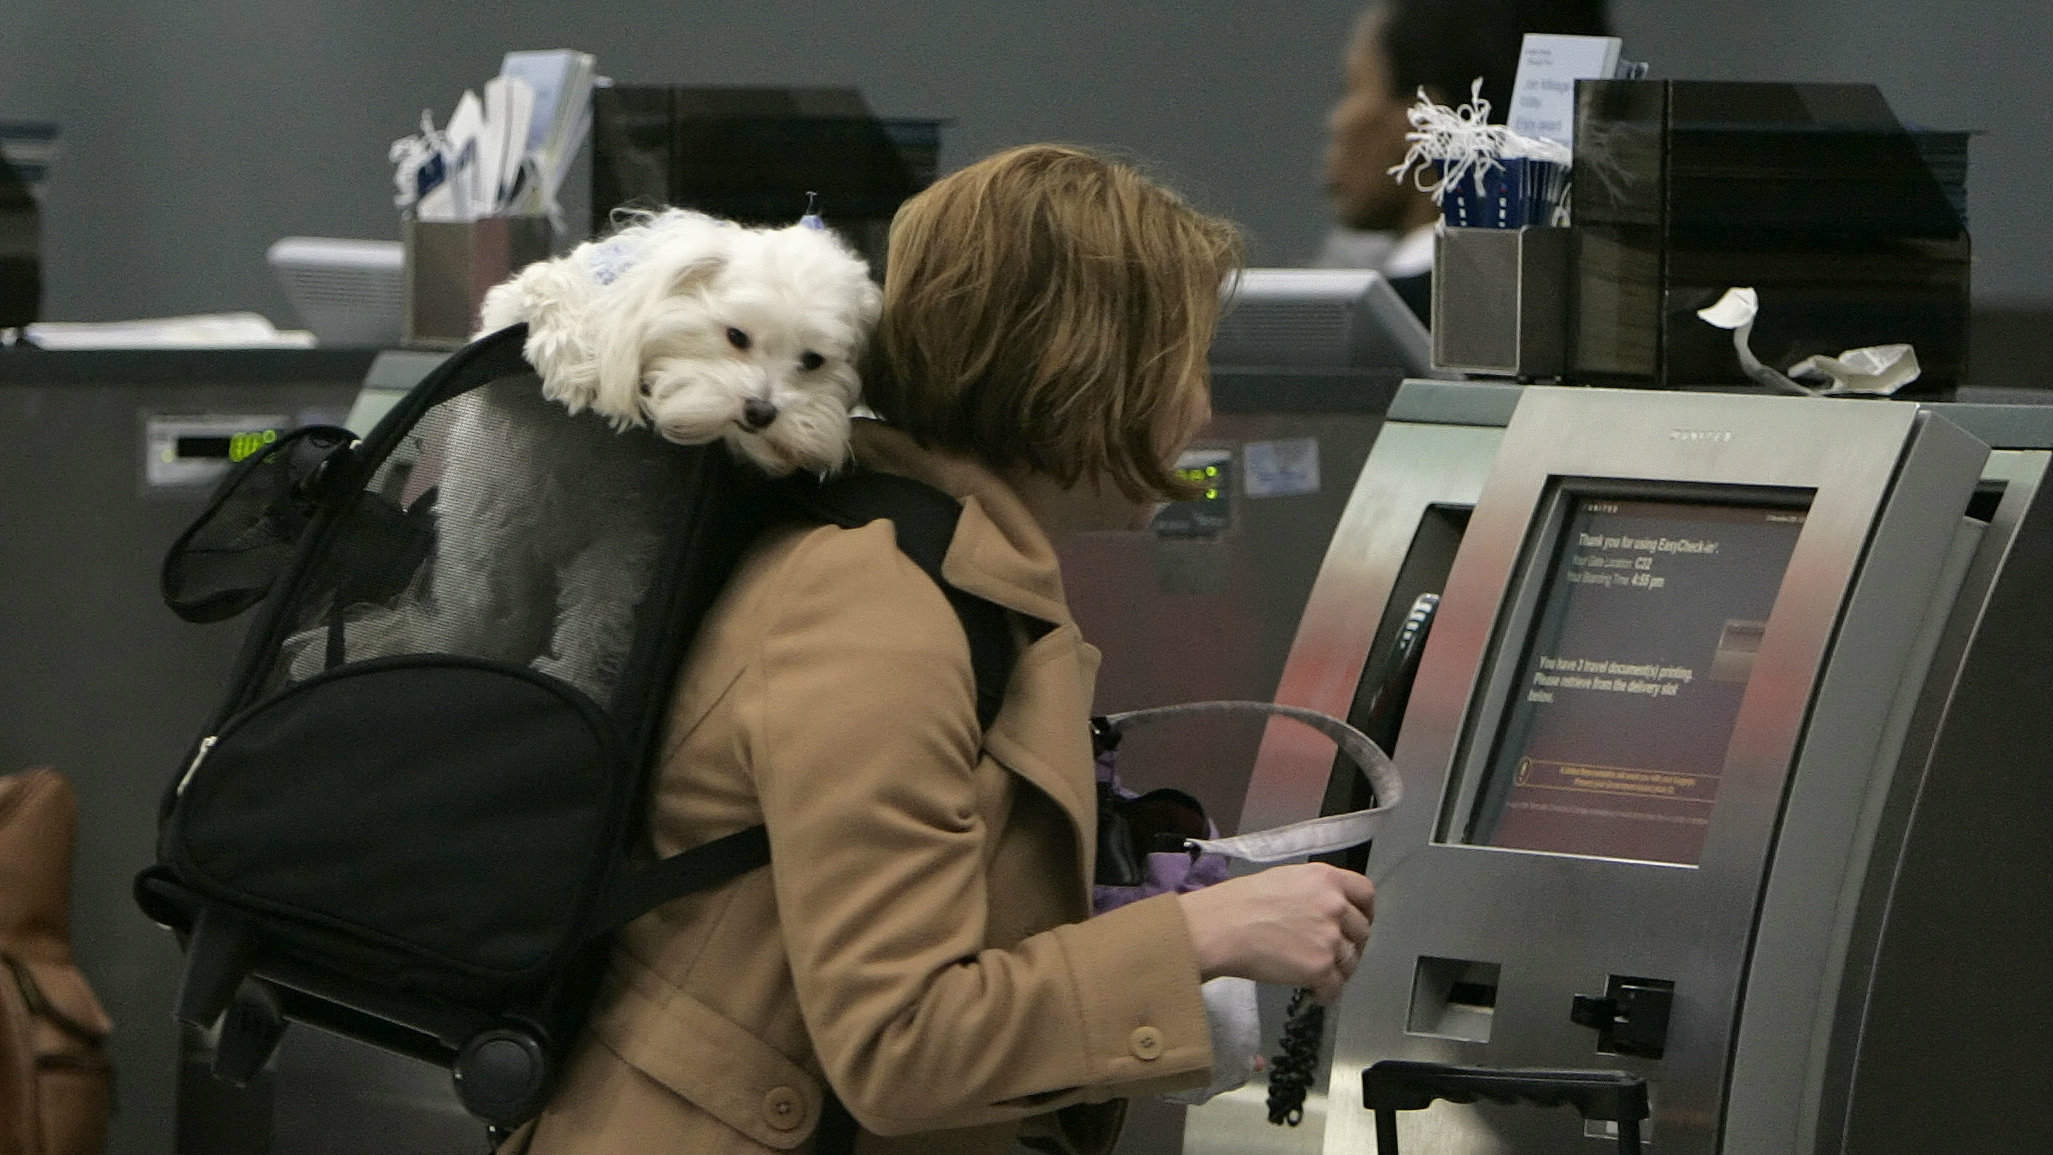 A woman checks in for a flight to Kansas City with her dog in tow.